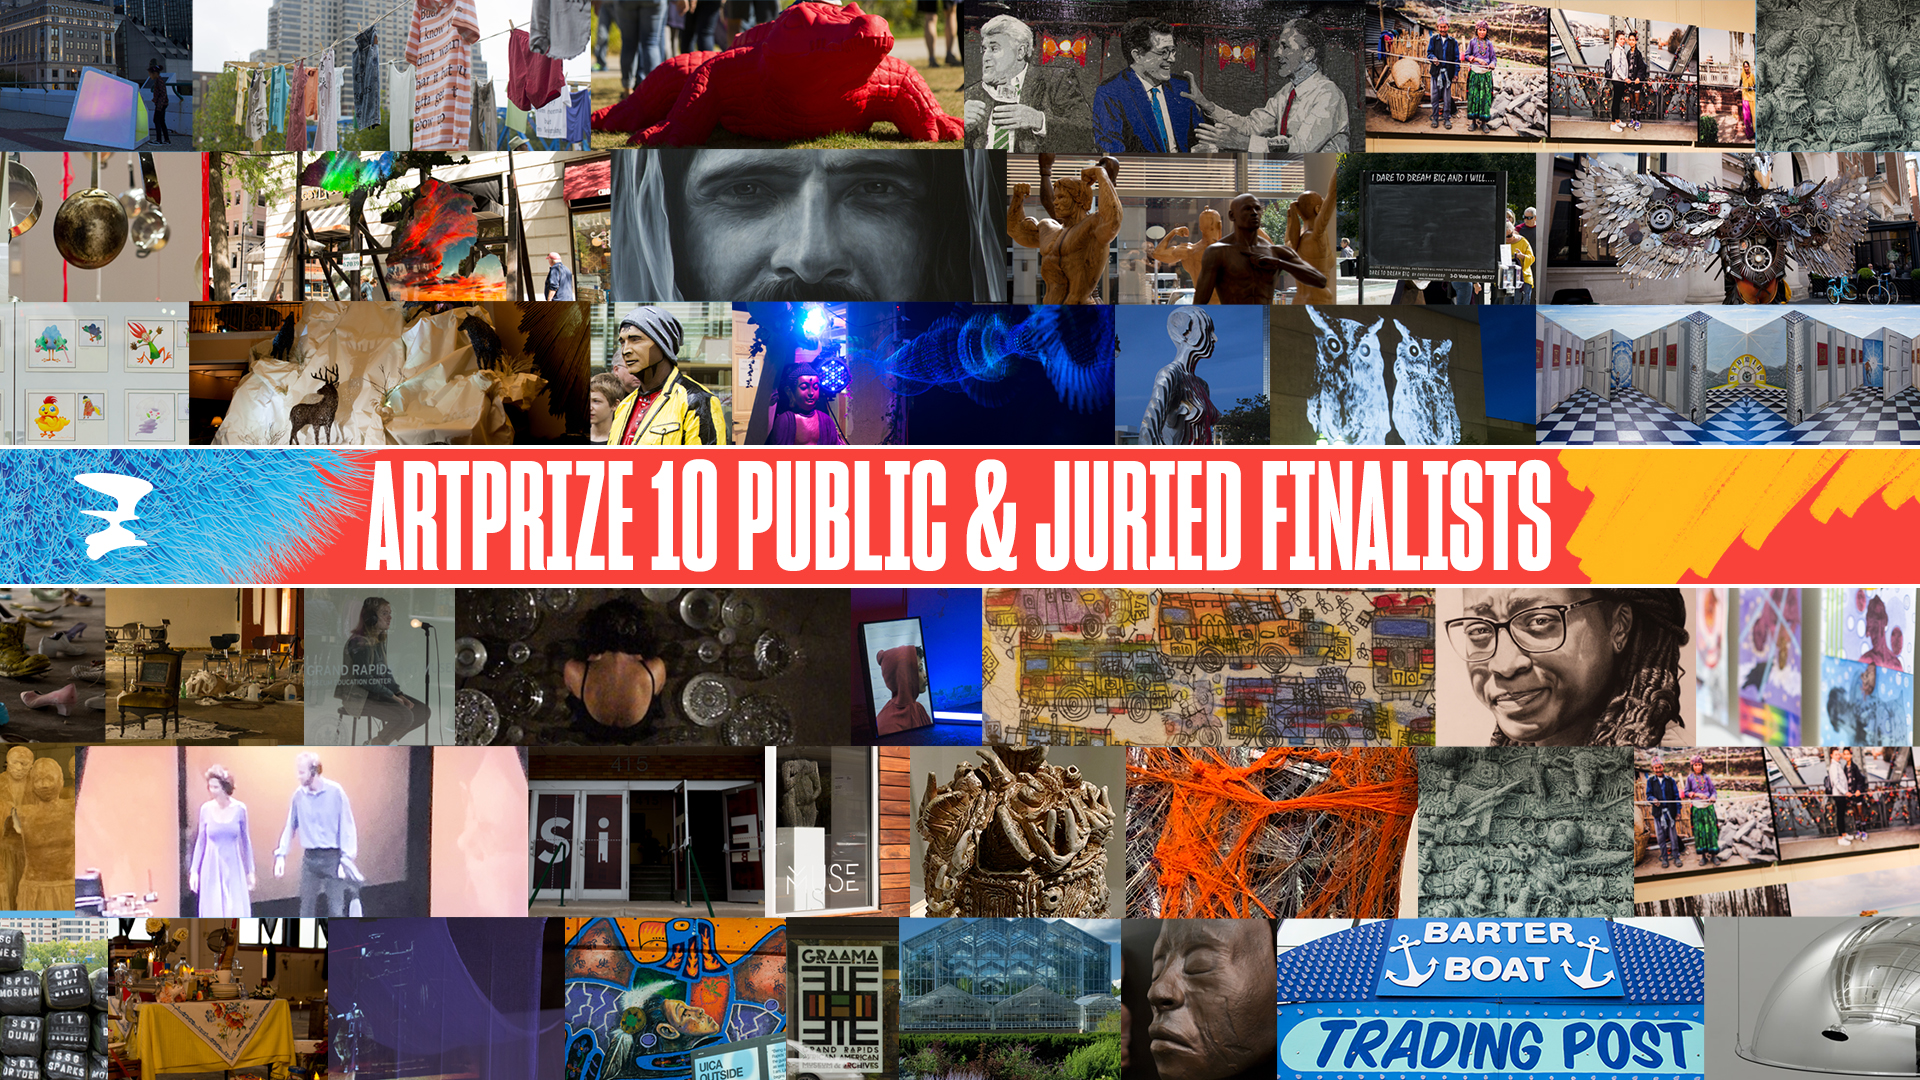 ArtPrize 10 juried award shortlist final 20 graphic_1538530963110.jpg.jpg